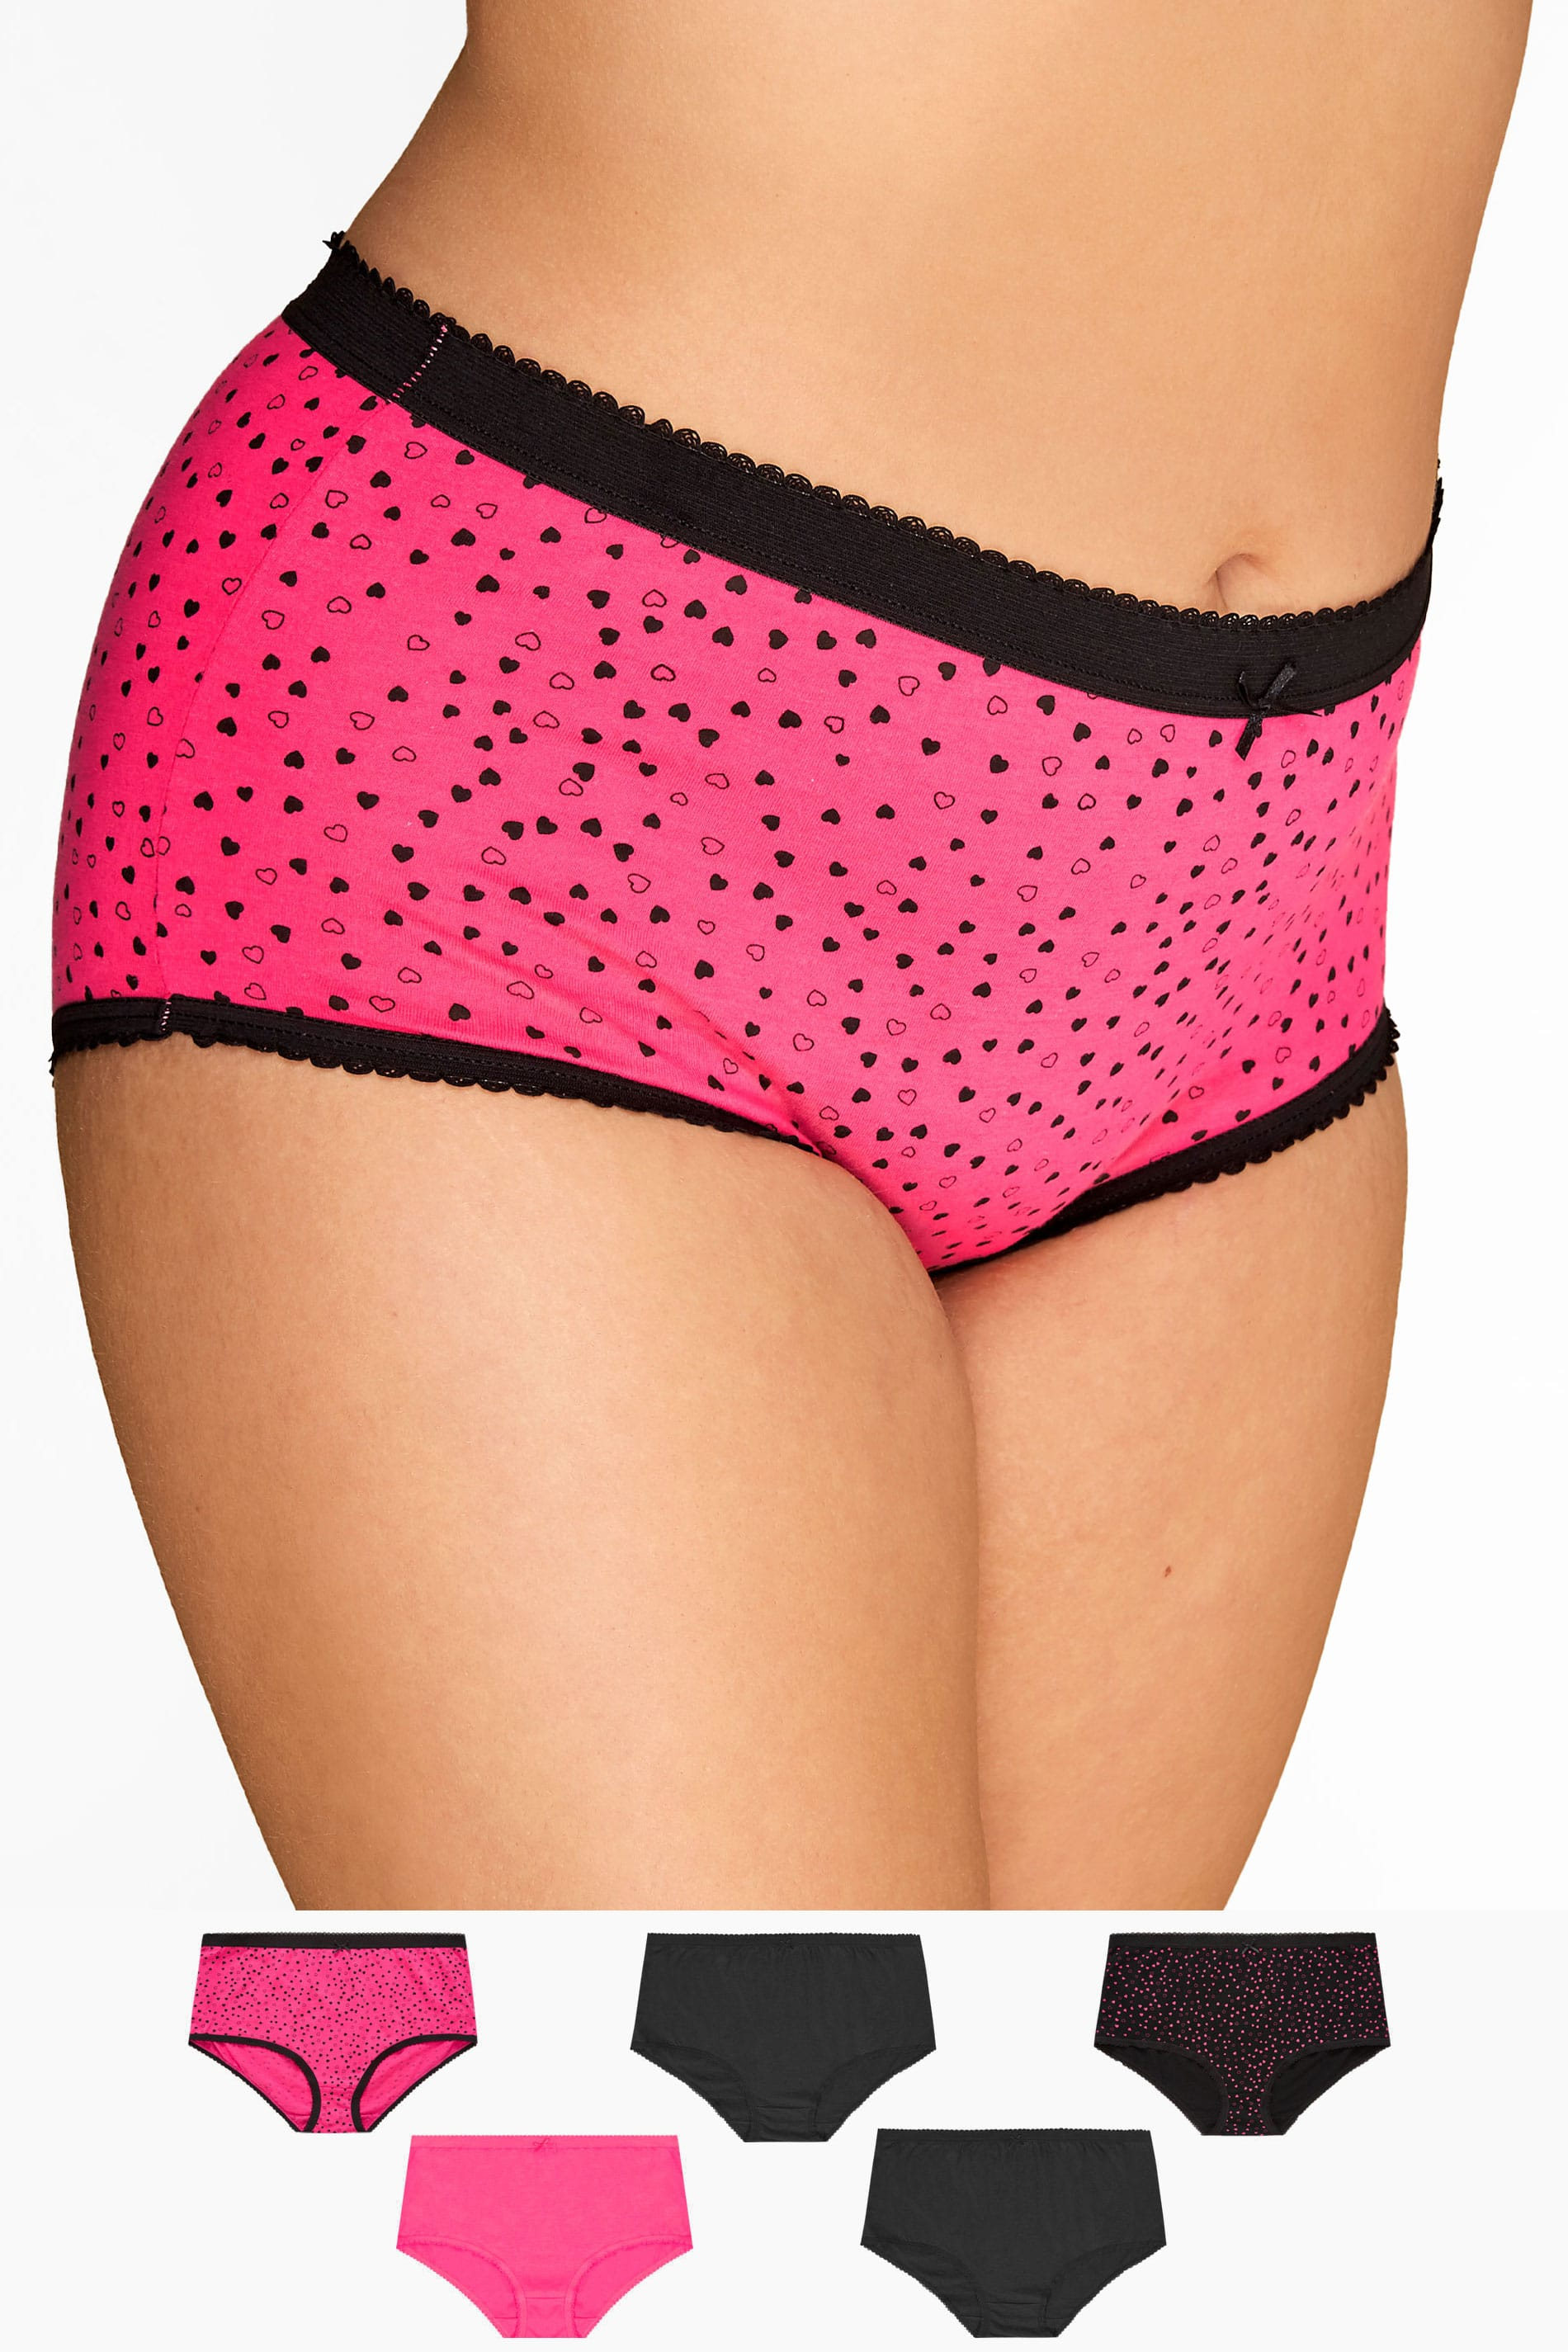 5 PACK Black & Pink Mini Heart Full Briefs